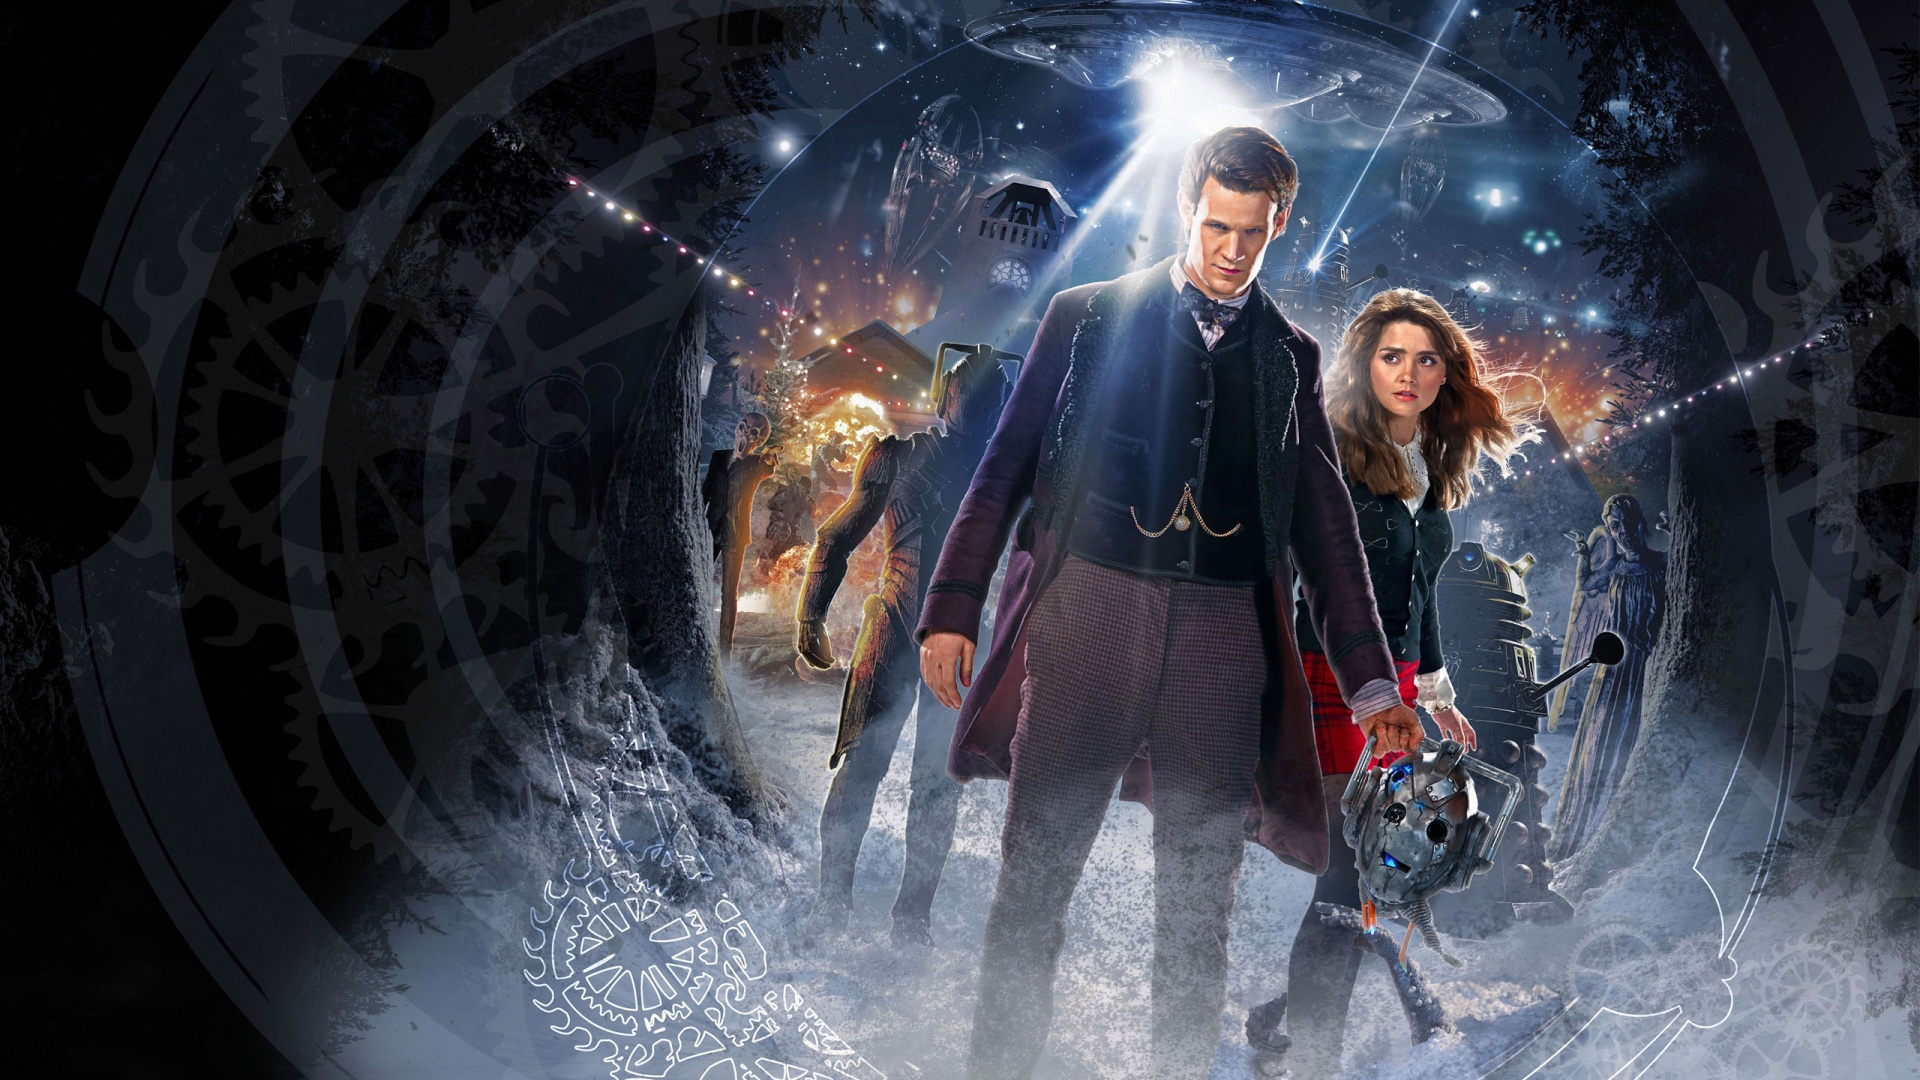 doctor who bbc Hd Wallpapers 1920x1080